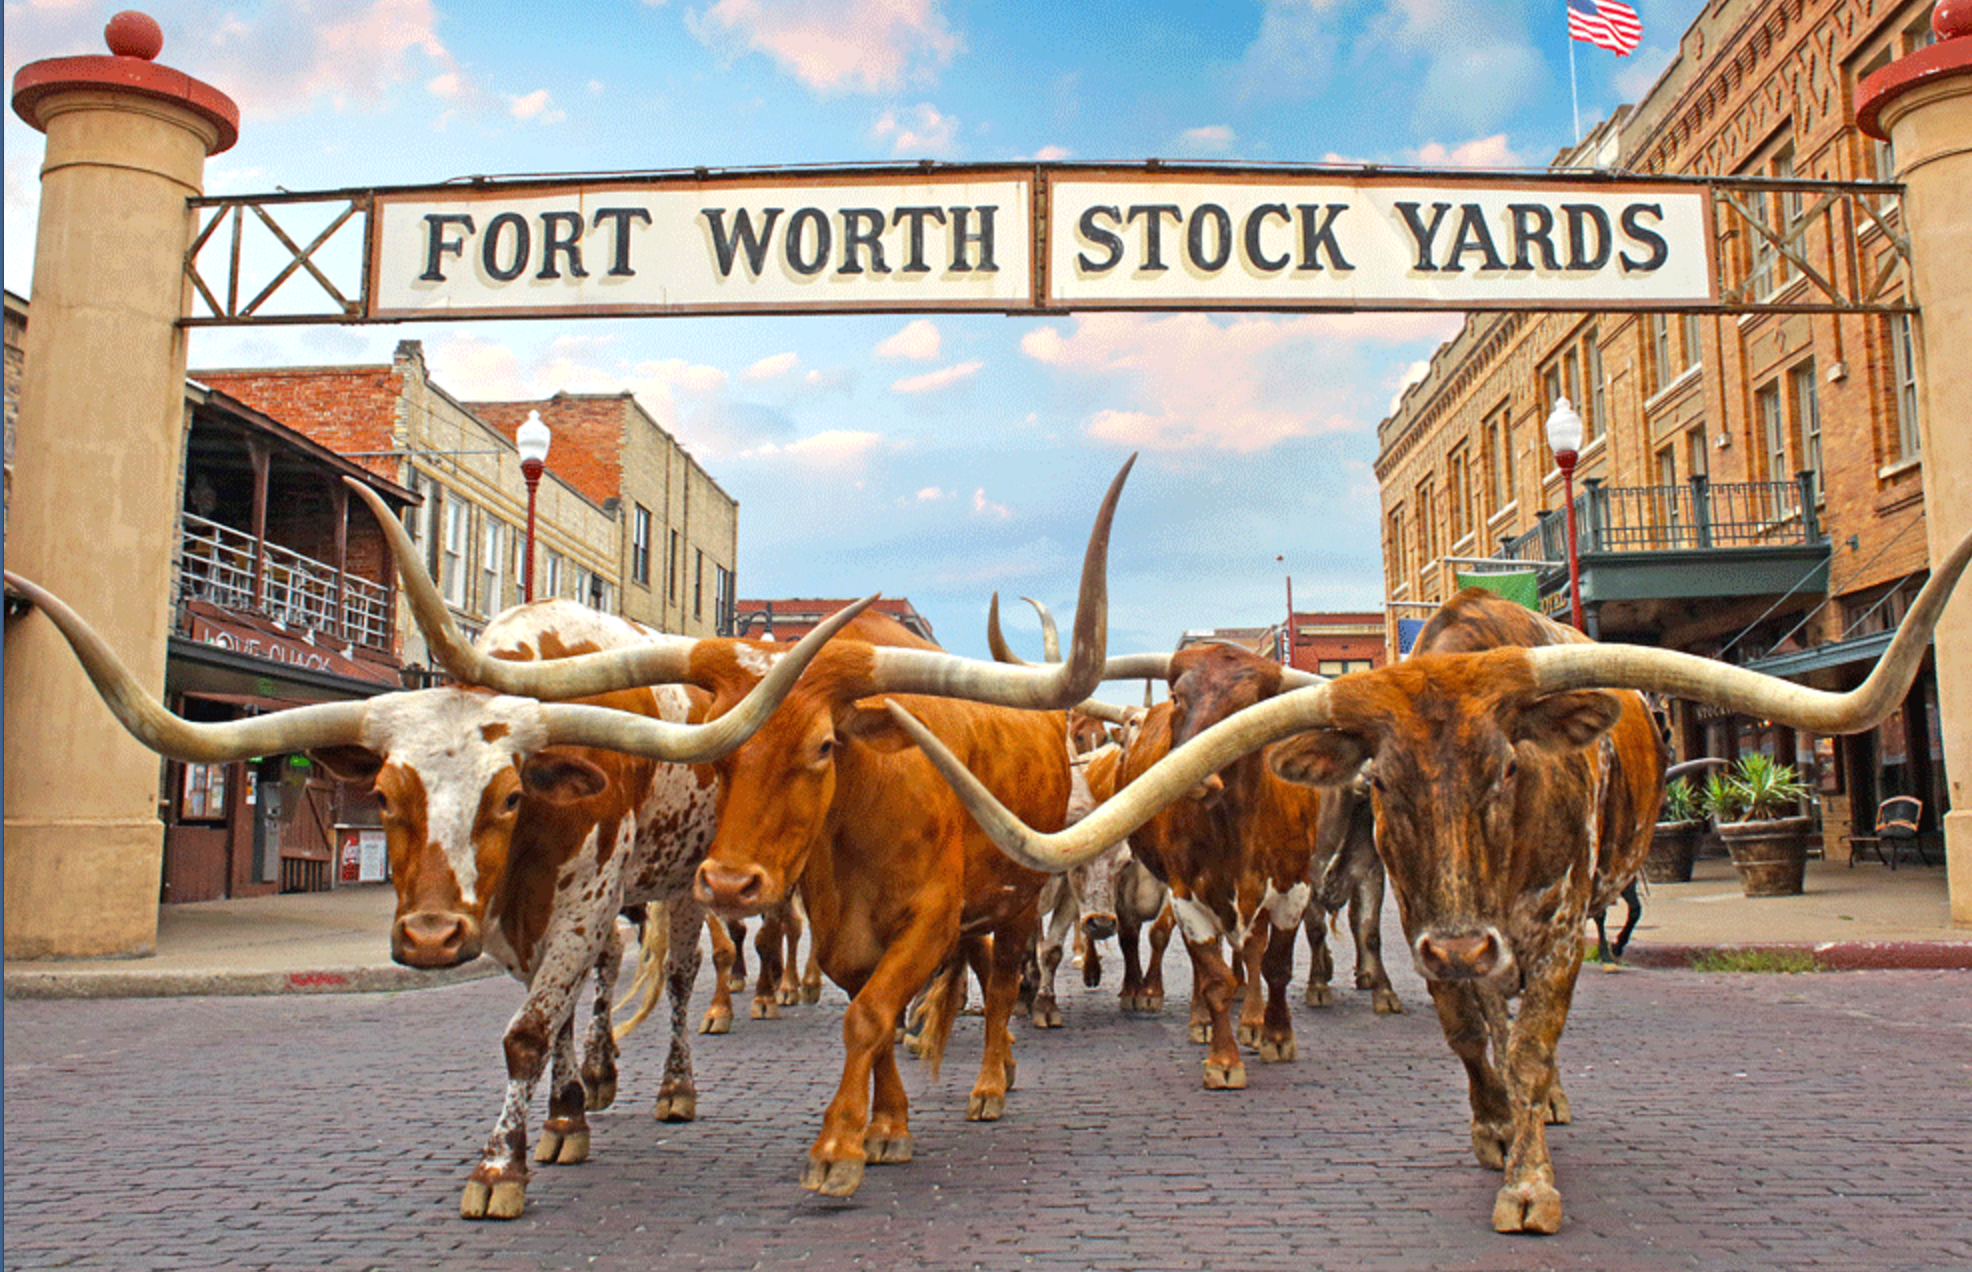 @AISAPinfo Annual Institute: My 14 Favorite Fun Facts about Fort Worth